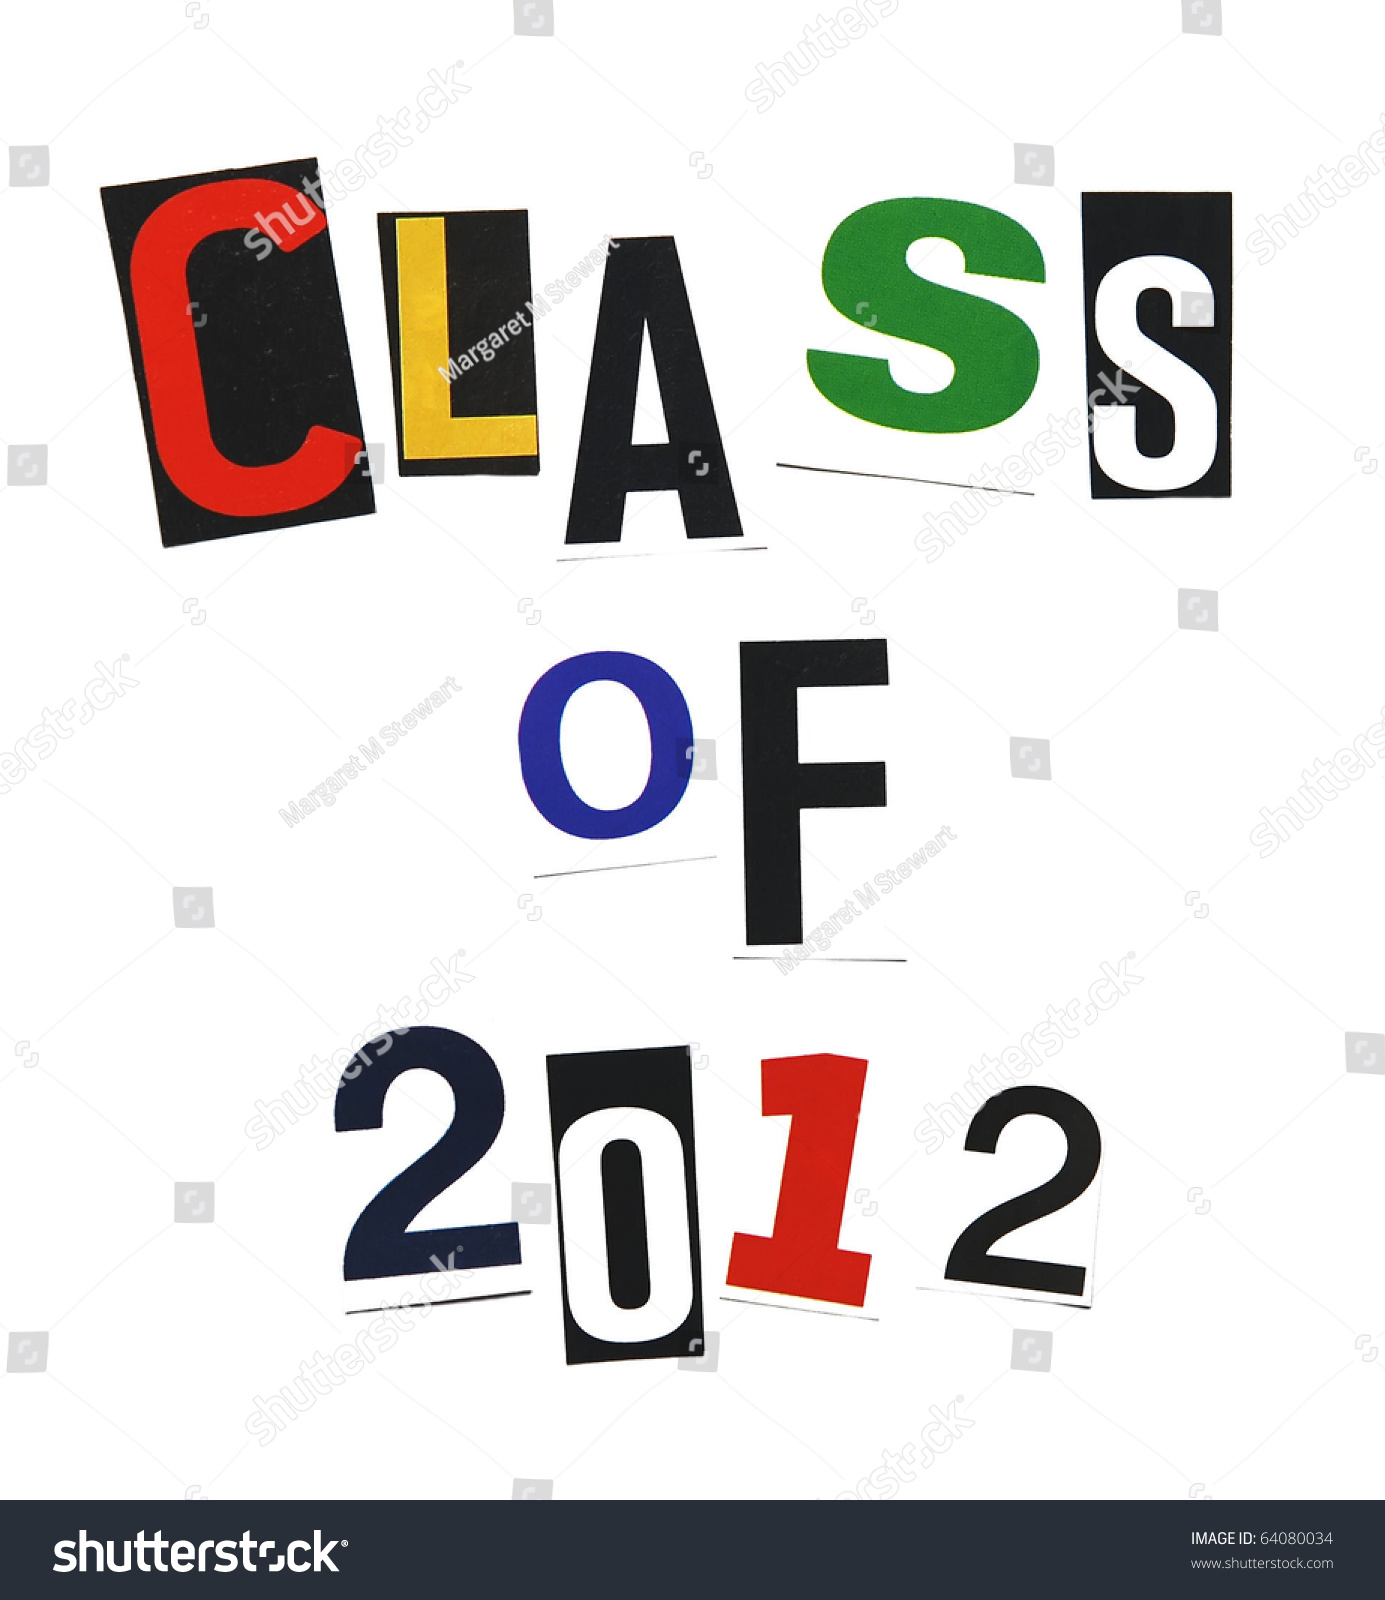 Class Of 2012 Written In A Mix Of Colorful Ransom Note